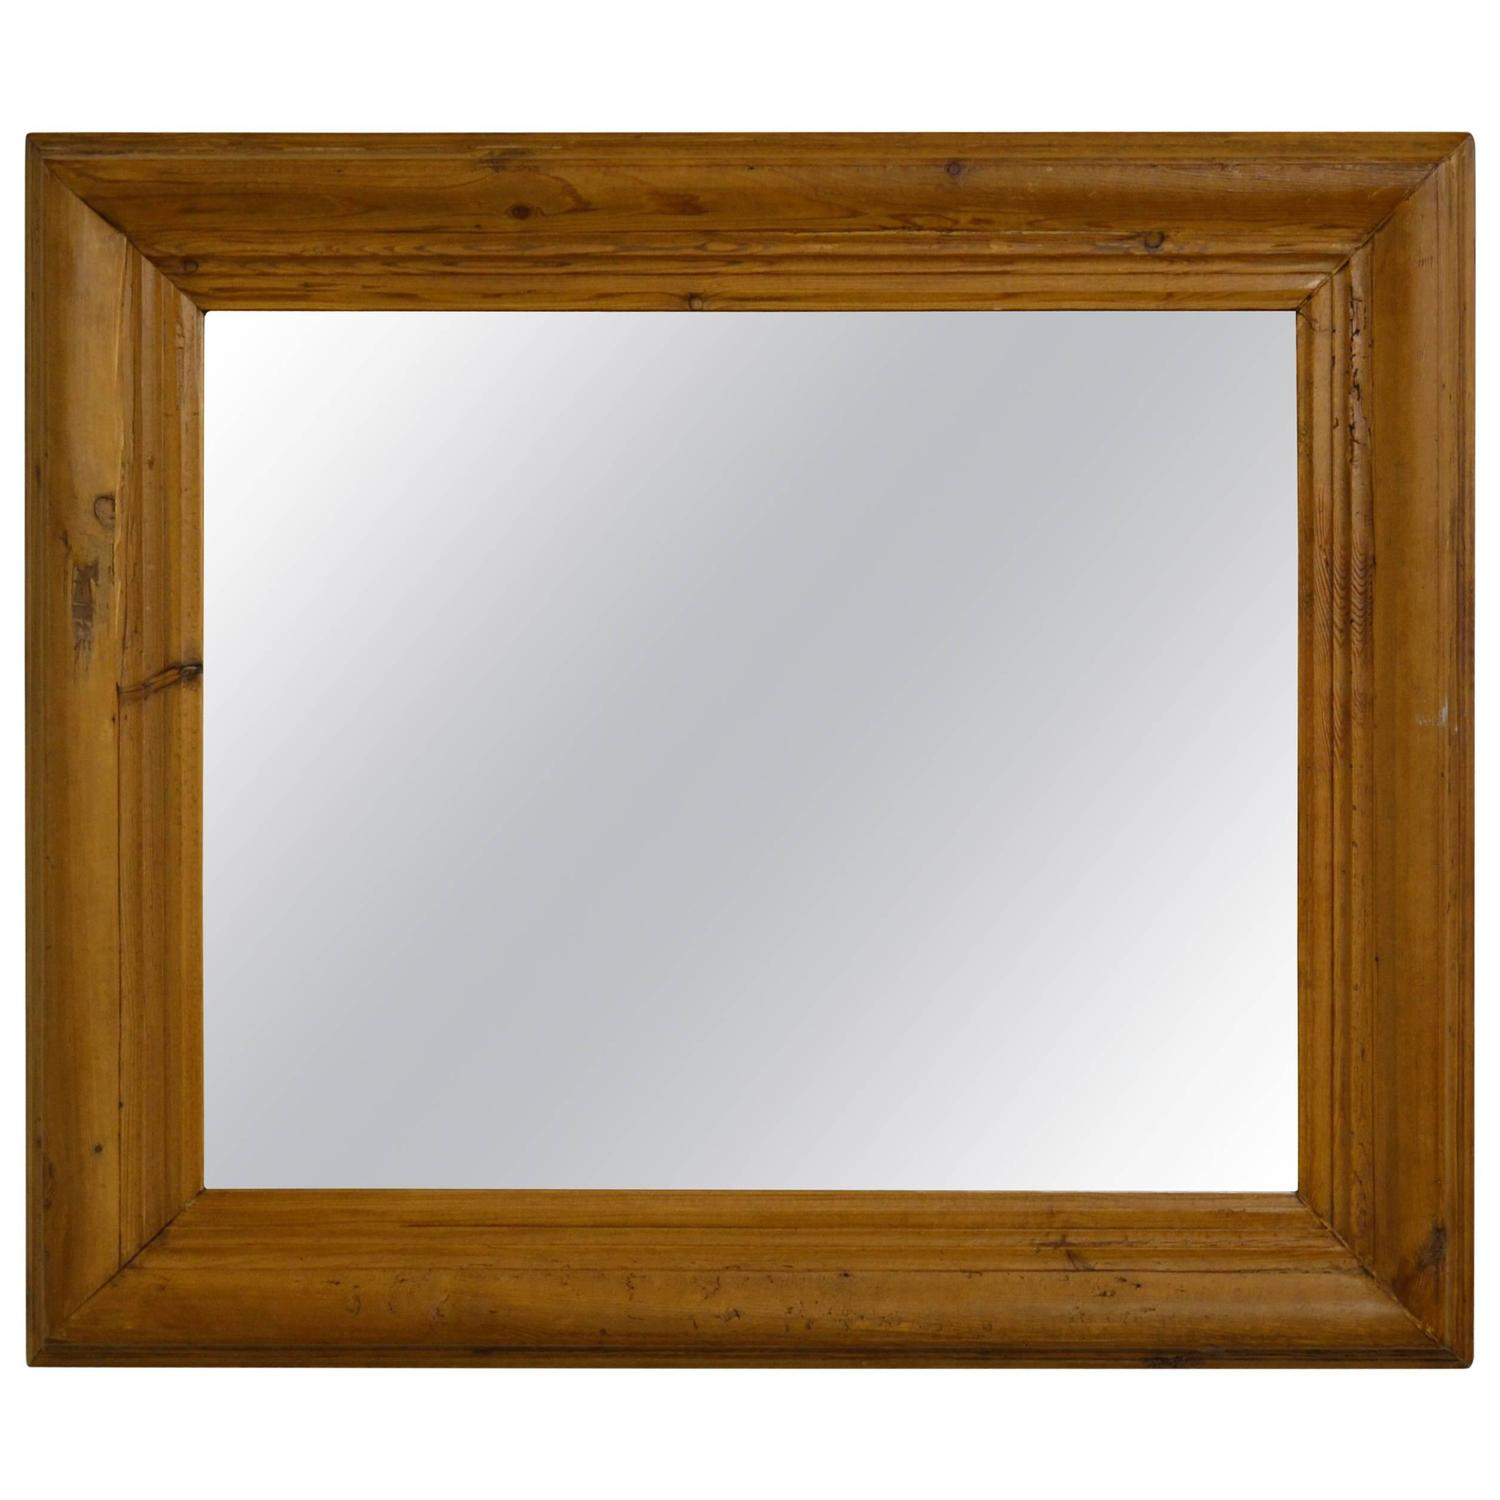 antique pine mirror frame for sale at 1stdibs. Black Bedroom Furniture Sets. Home Design Ideas